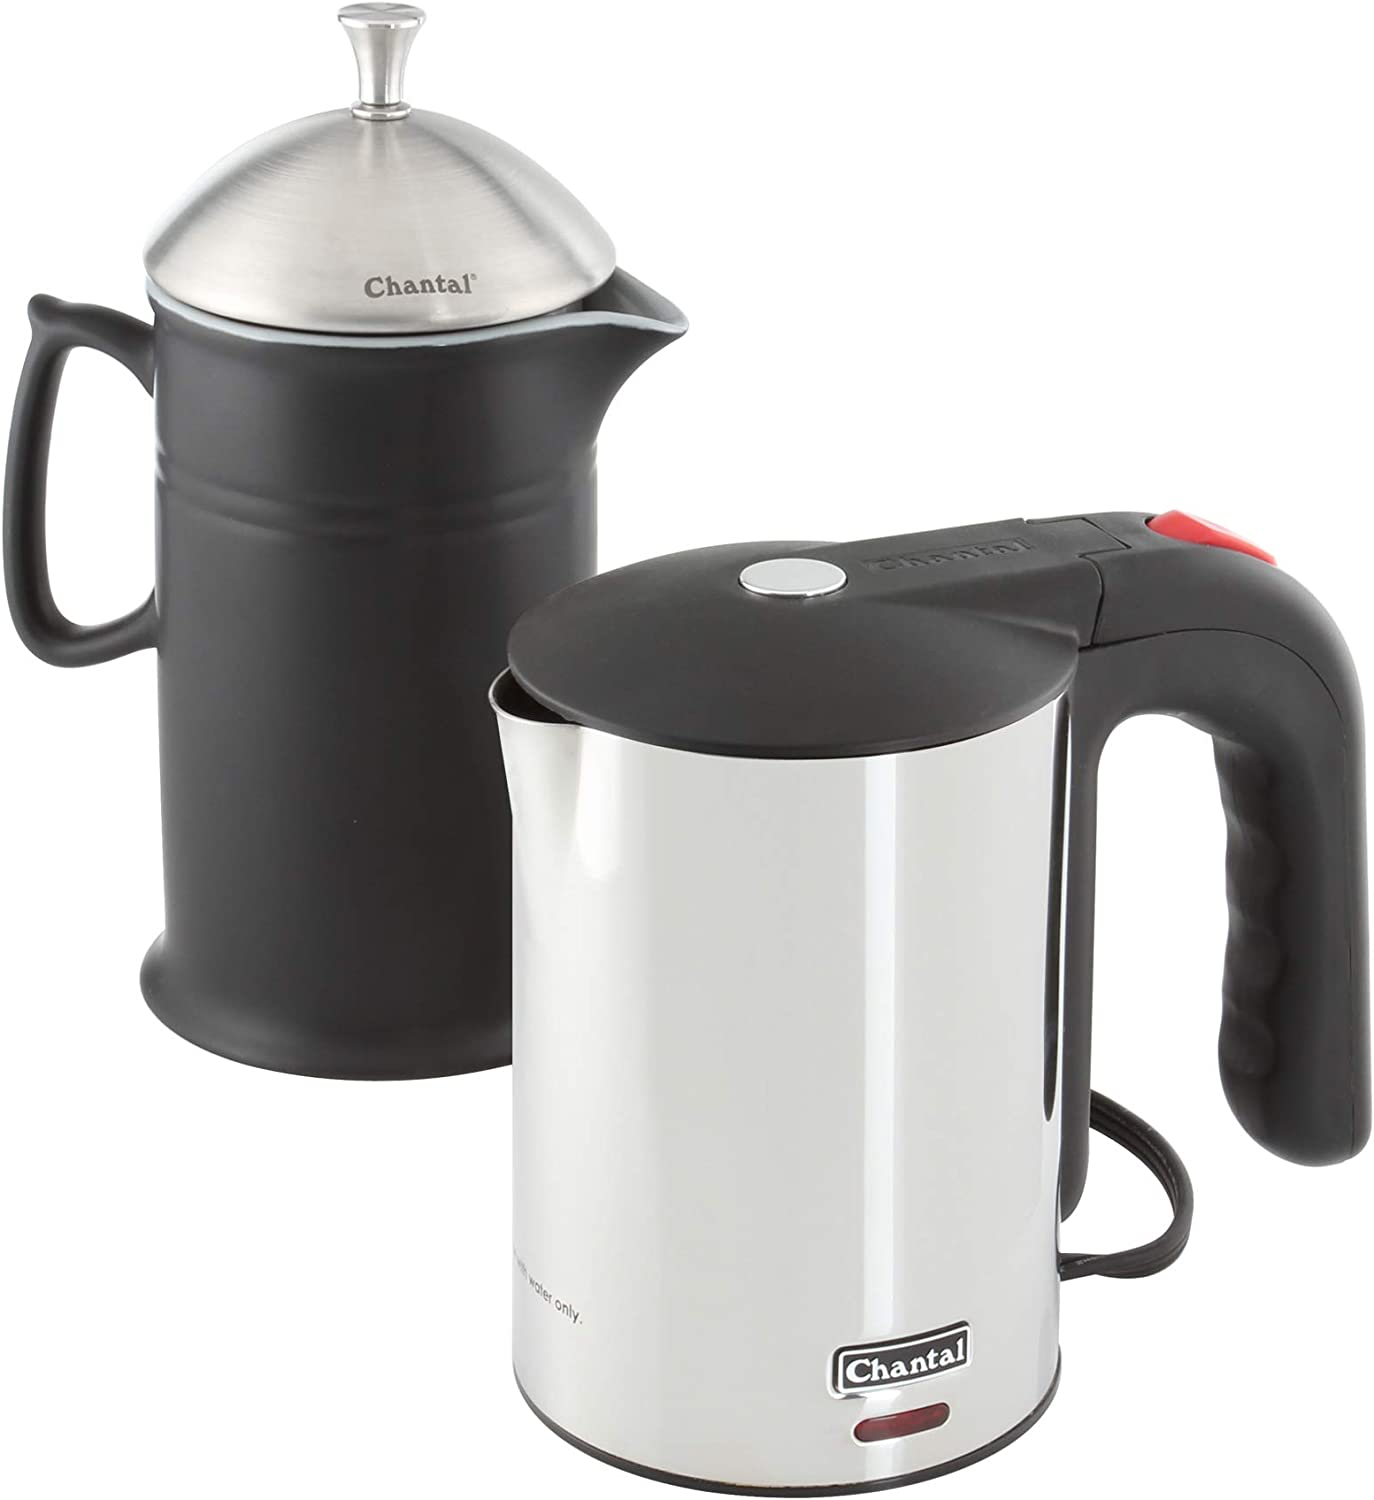 Chantal 2-pc Easy French Max 74% OFF Press Set Kettle Electric Black Matte 25% OFF